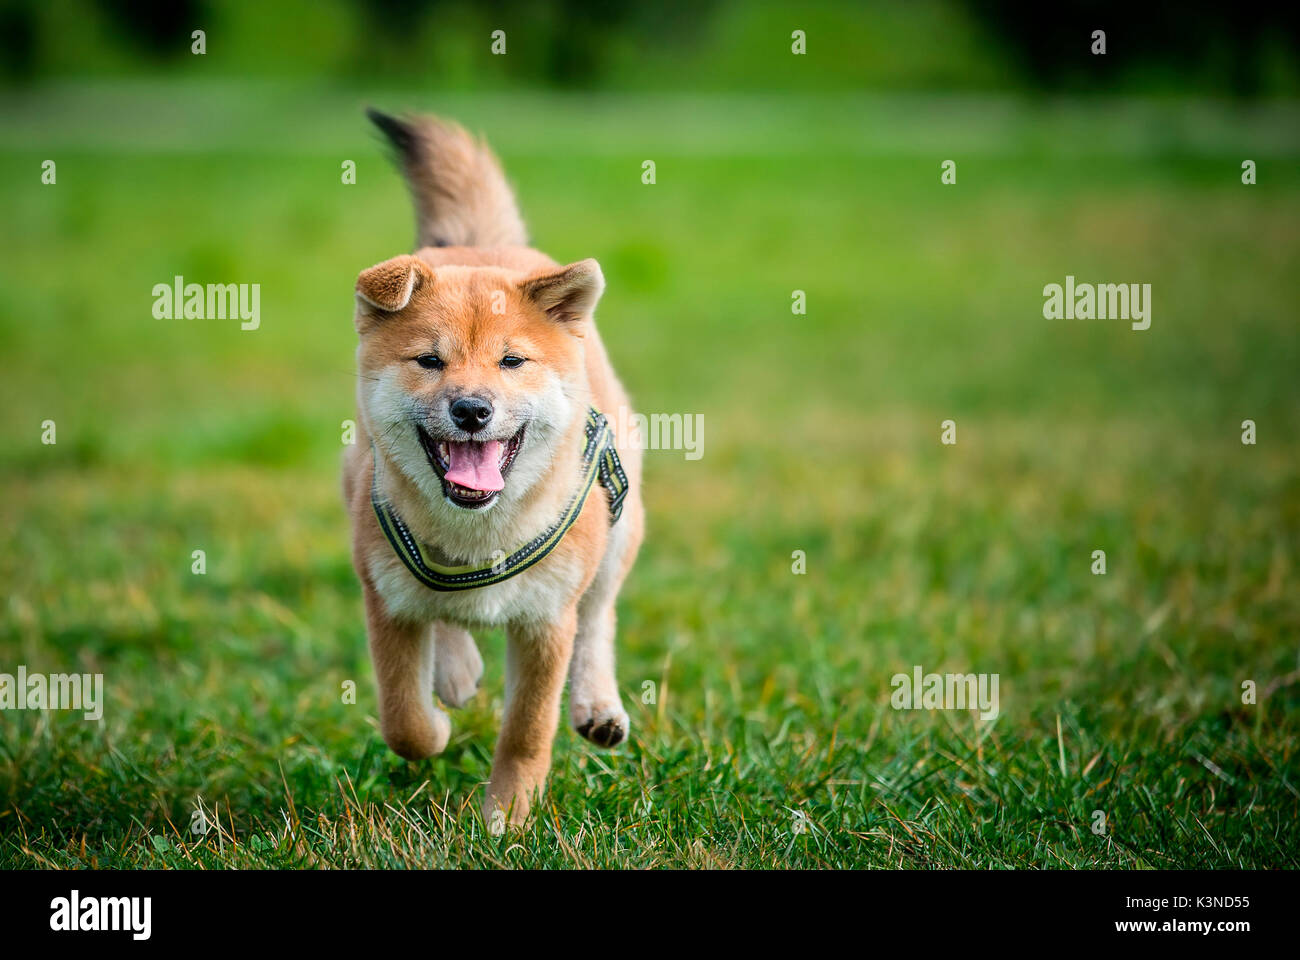 Brescia, Lombardy, Italy Shiba inu puppy photographed while he is running - Stock Image